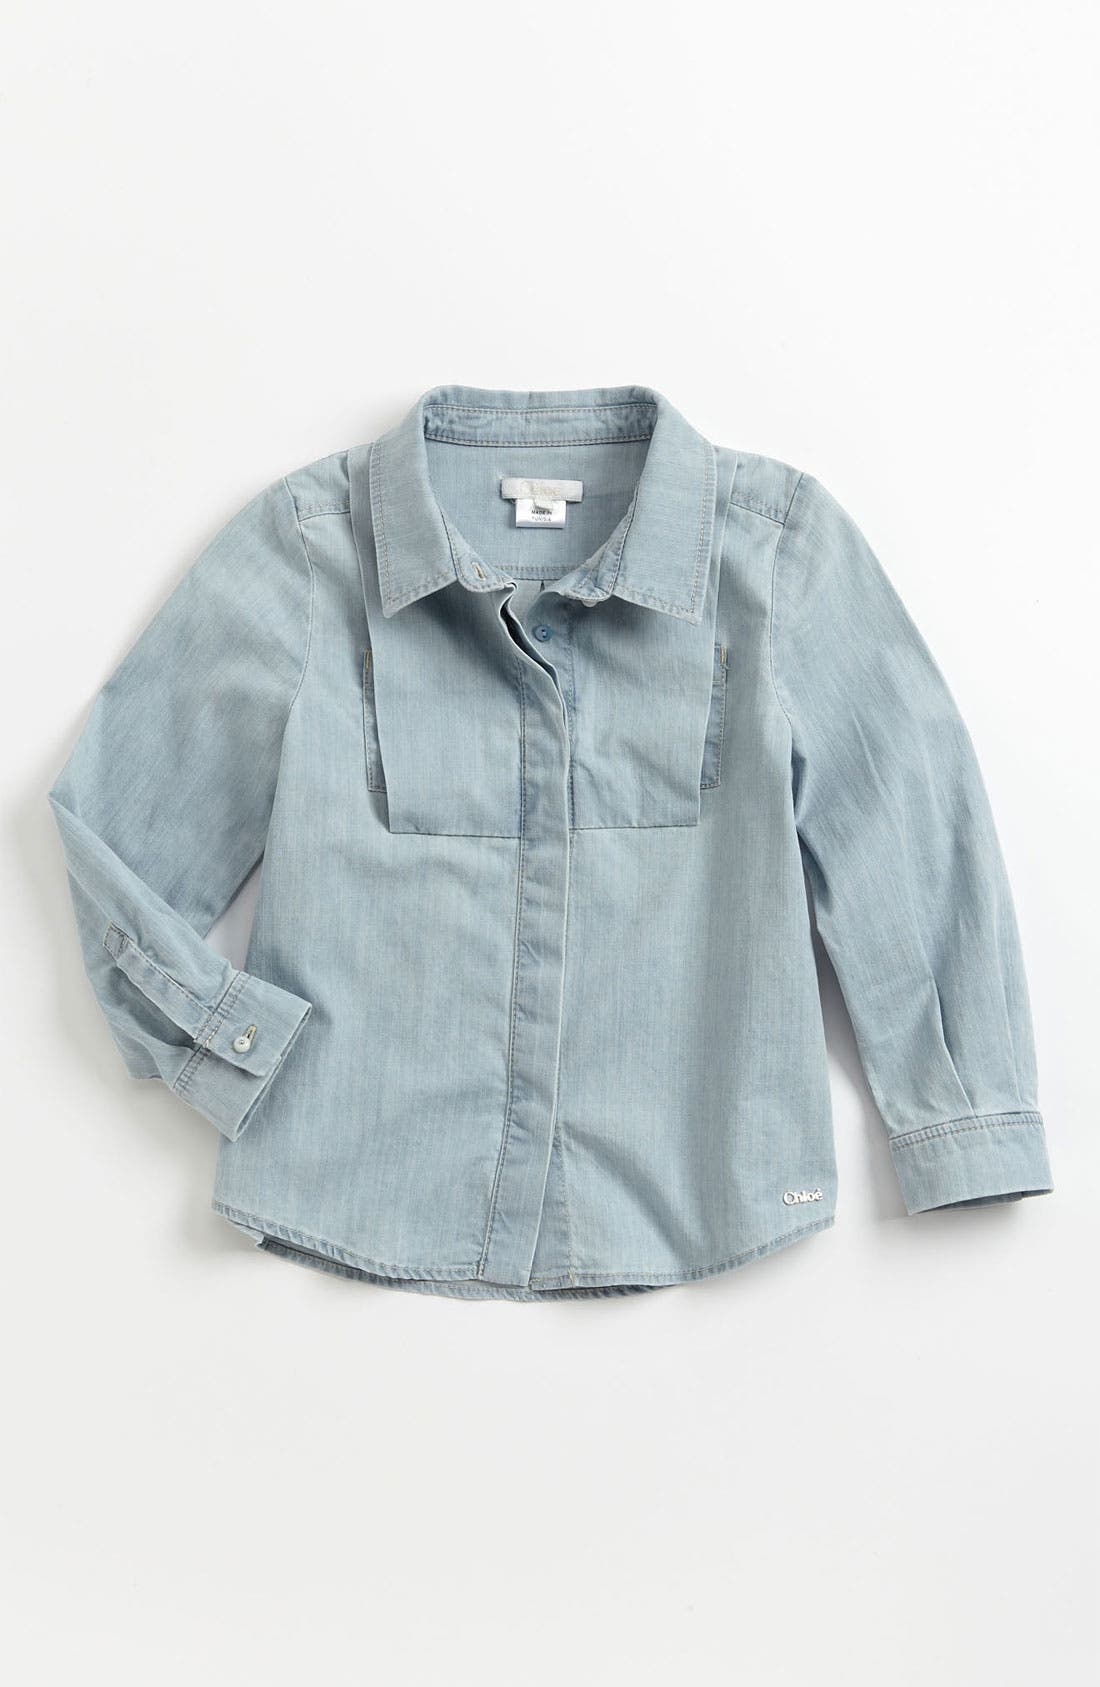 Alternate Image 1 Selected - Chloé Chambray Shirt (Little Girls & Big Girls)